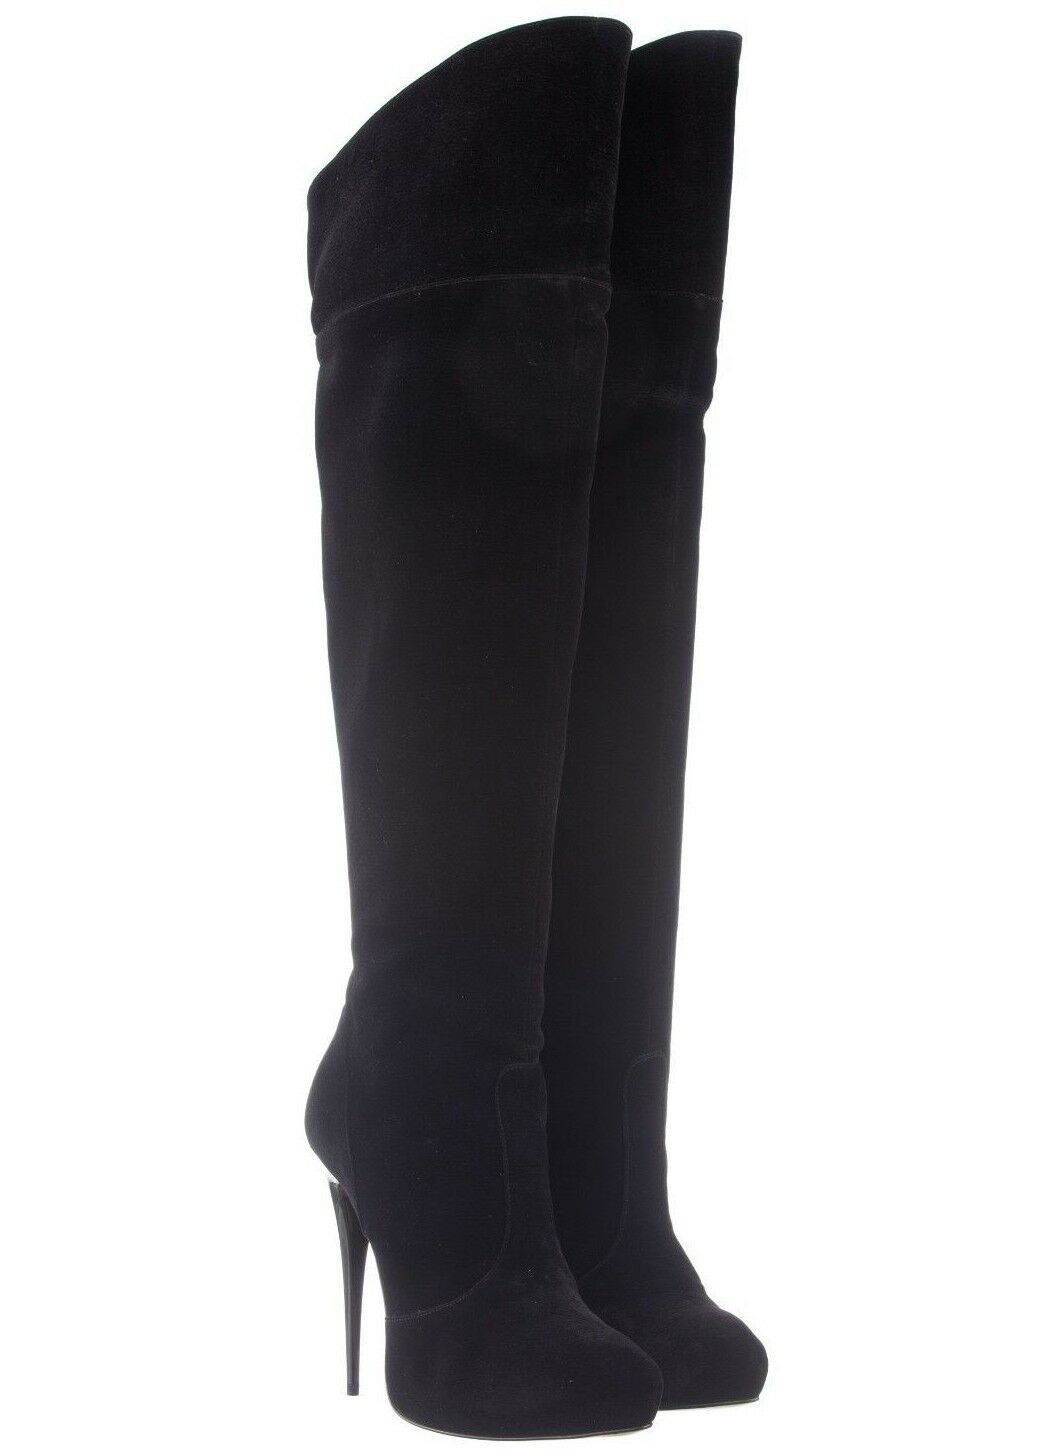 MORI PLATFORM OVER KNEE HEELS BOOTS STIEFEL STIVALI LEATHER PEARLS BLACK black 43